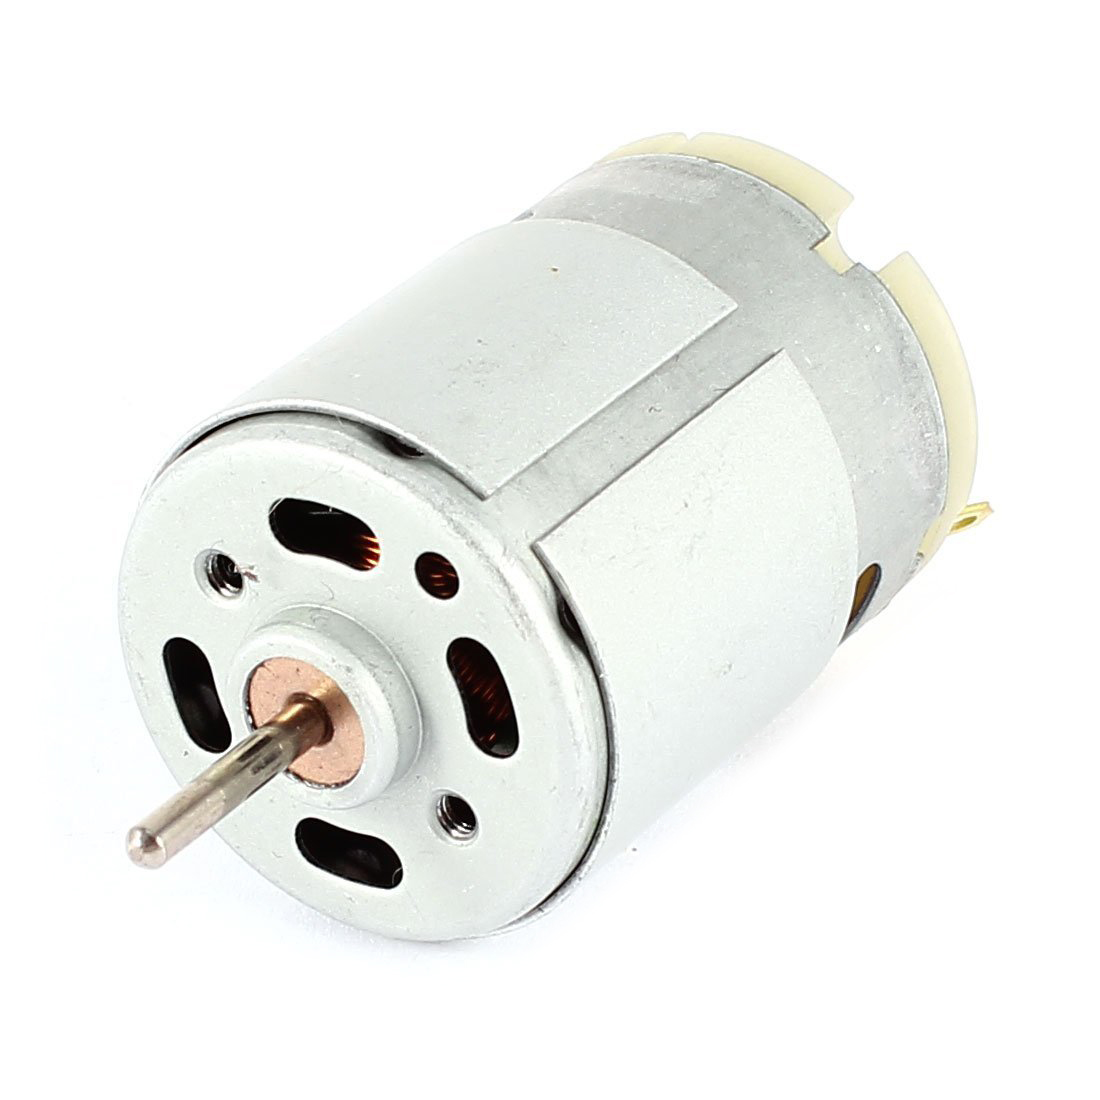 High quality rs380 dc 1 5 18v 30000rpm micro motor 38x28mm for Toy helicopter motor rpm